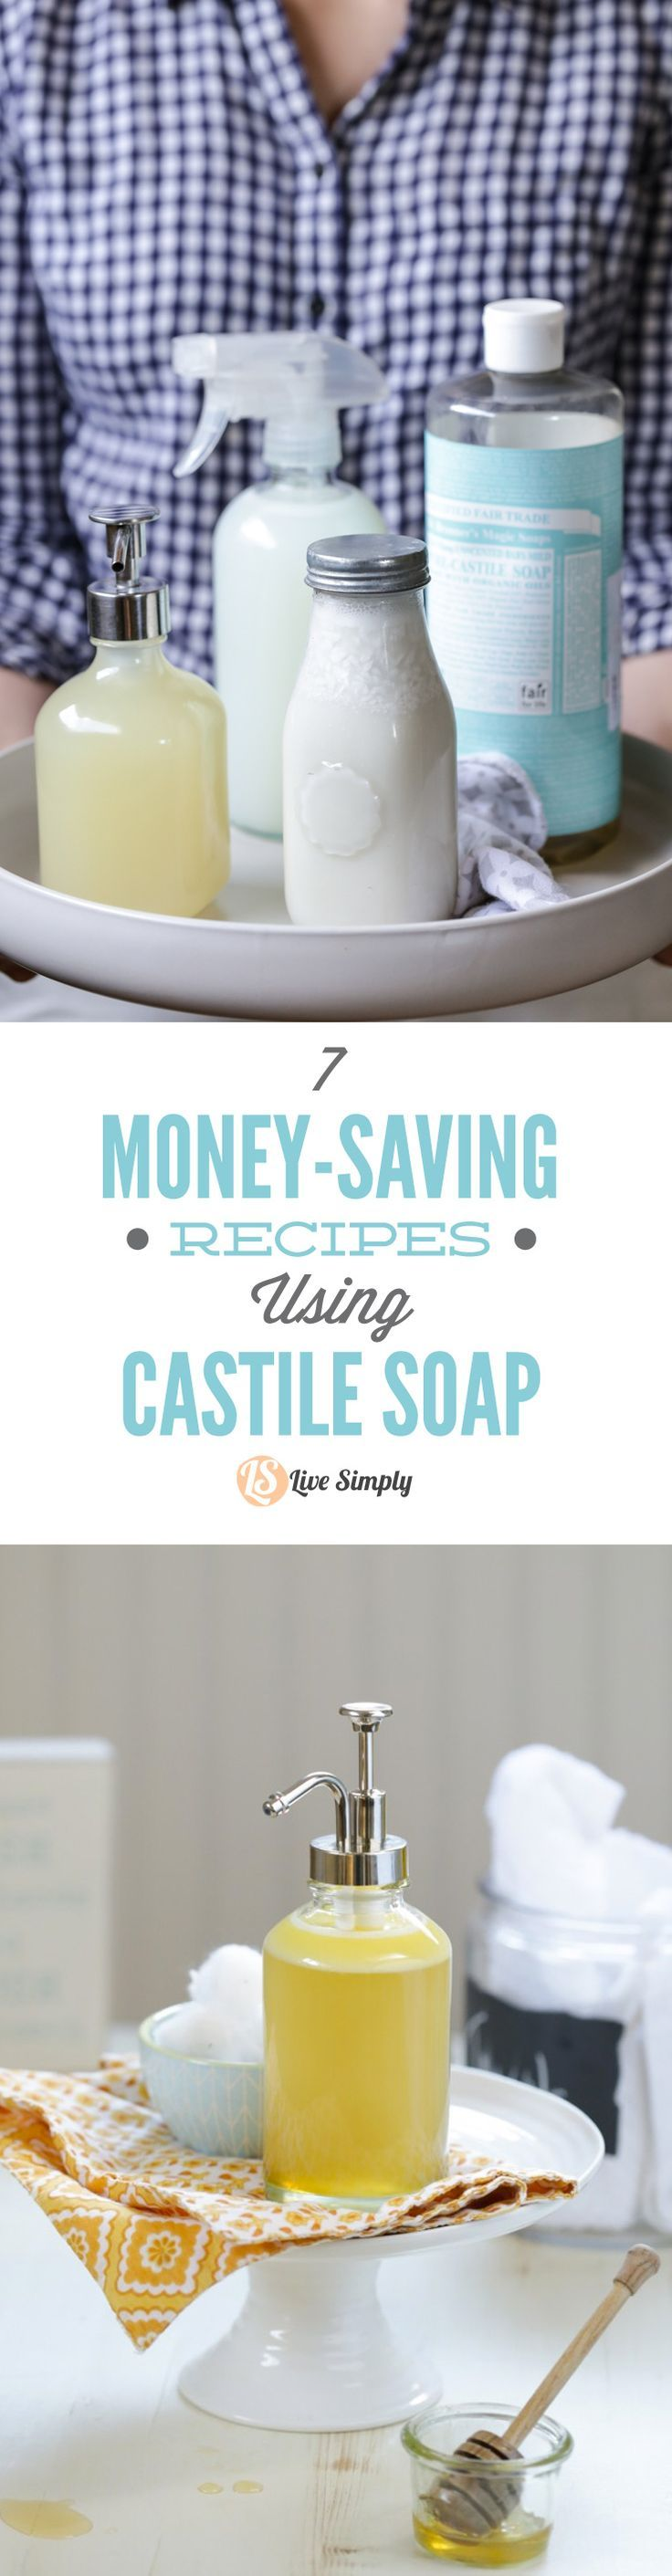 7 MoneySaving Recipes Using Castile Soap Cleaning